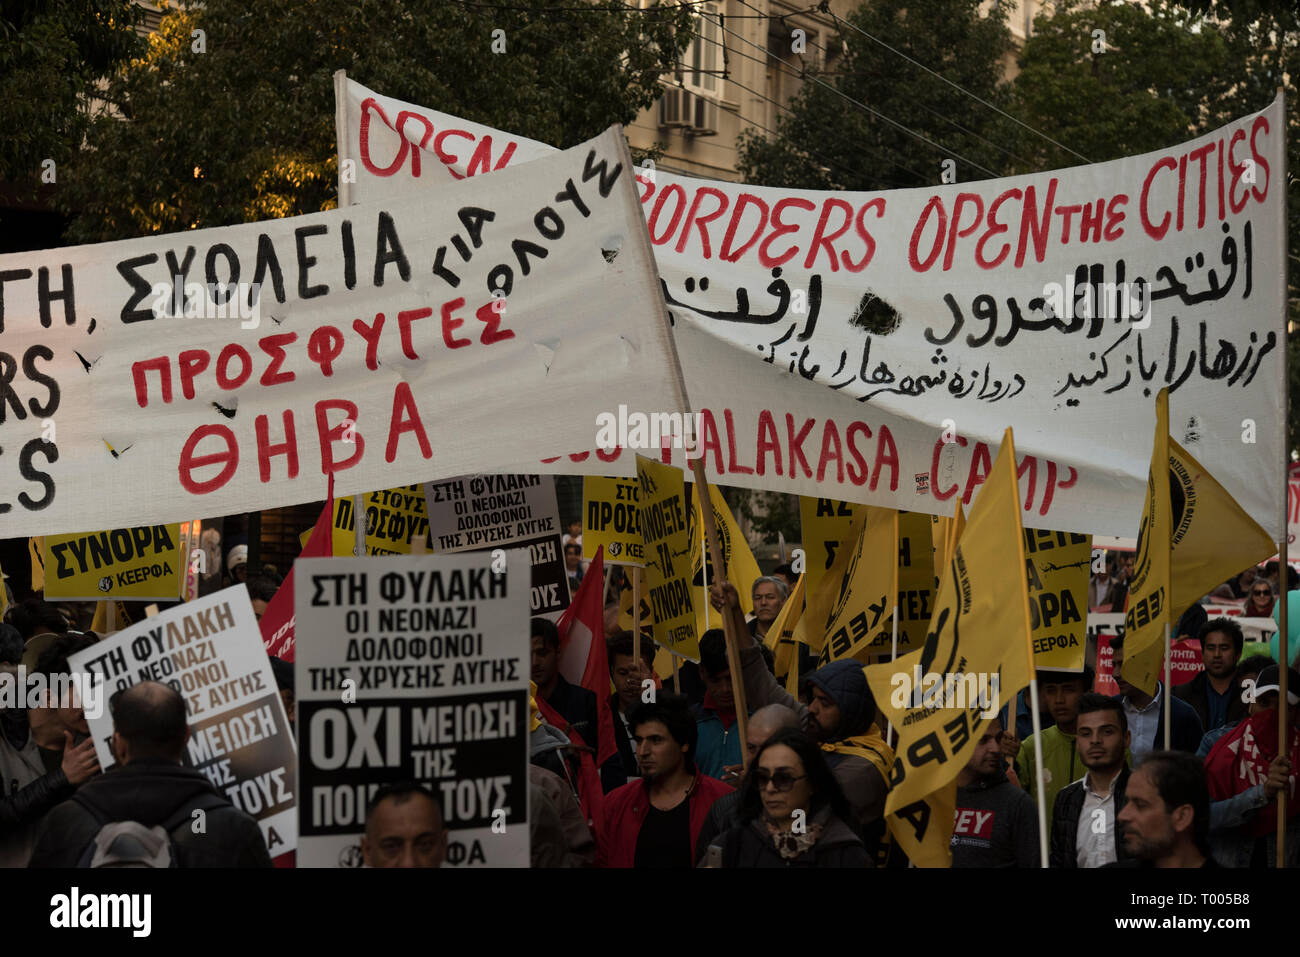 Athens, Greece. 16th March 2019. Migrants and refugees hold placards and shout slogans against racism and closed borders as well as against the greek neo-Nazi party Golden Dawn, currently on trial with accusations such as criminal organization, murder, possession of weapons and racist violence. Leftist and anti-racist organizations staged a rally on the occasion of the International Day against racism to demonstrate against discrimination and racist policies and behaviours. © Nikolas Georgiou / Alamy Live News Stock Photo